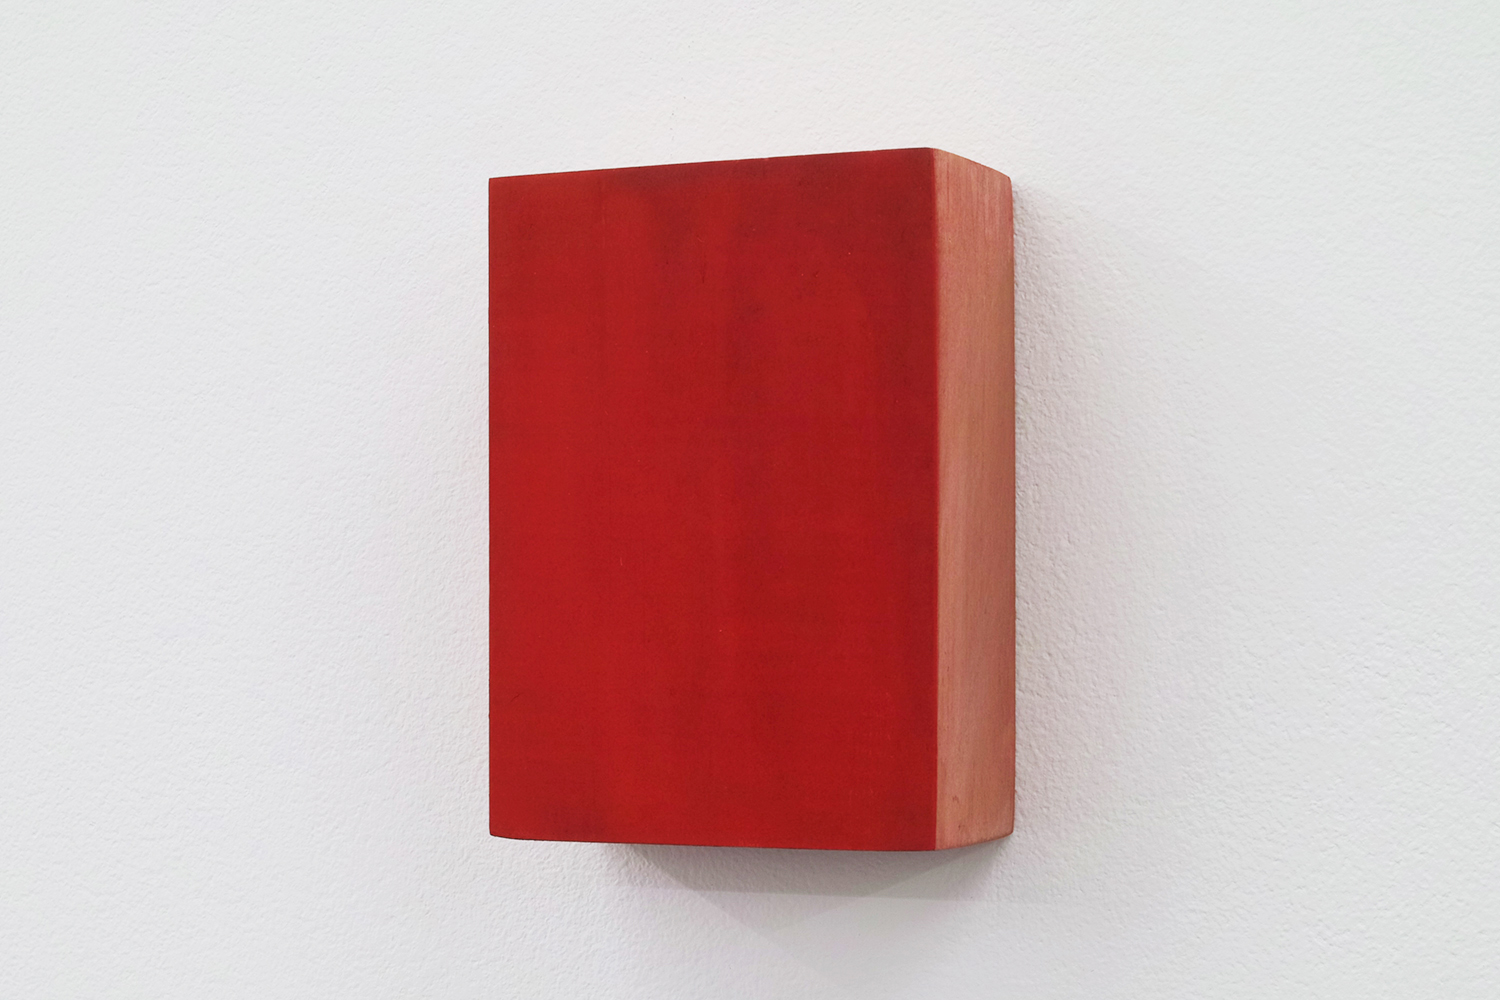 Text No. 434<br>pigment, acrylic on wood,  83 x 61 x 27 mm,  2003